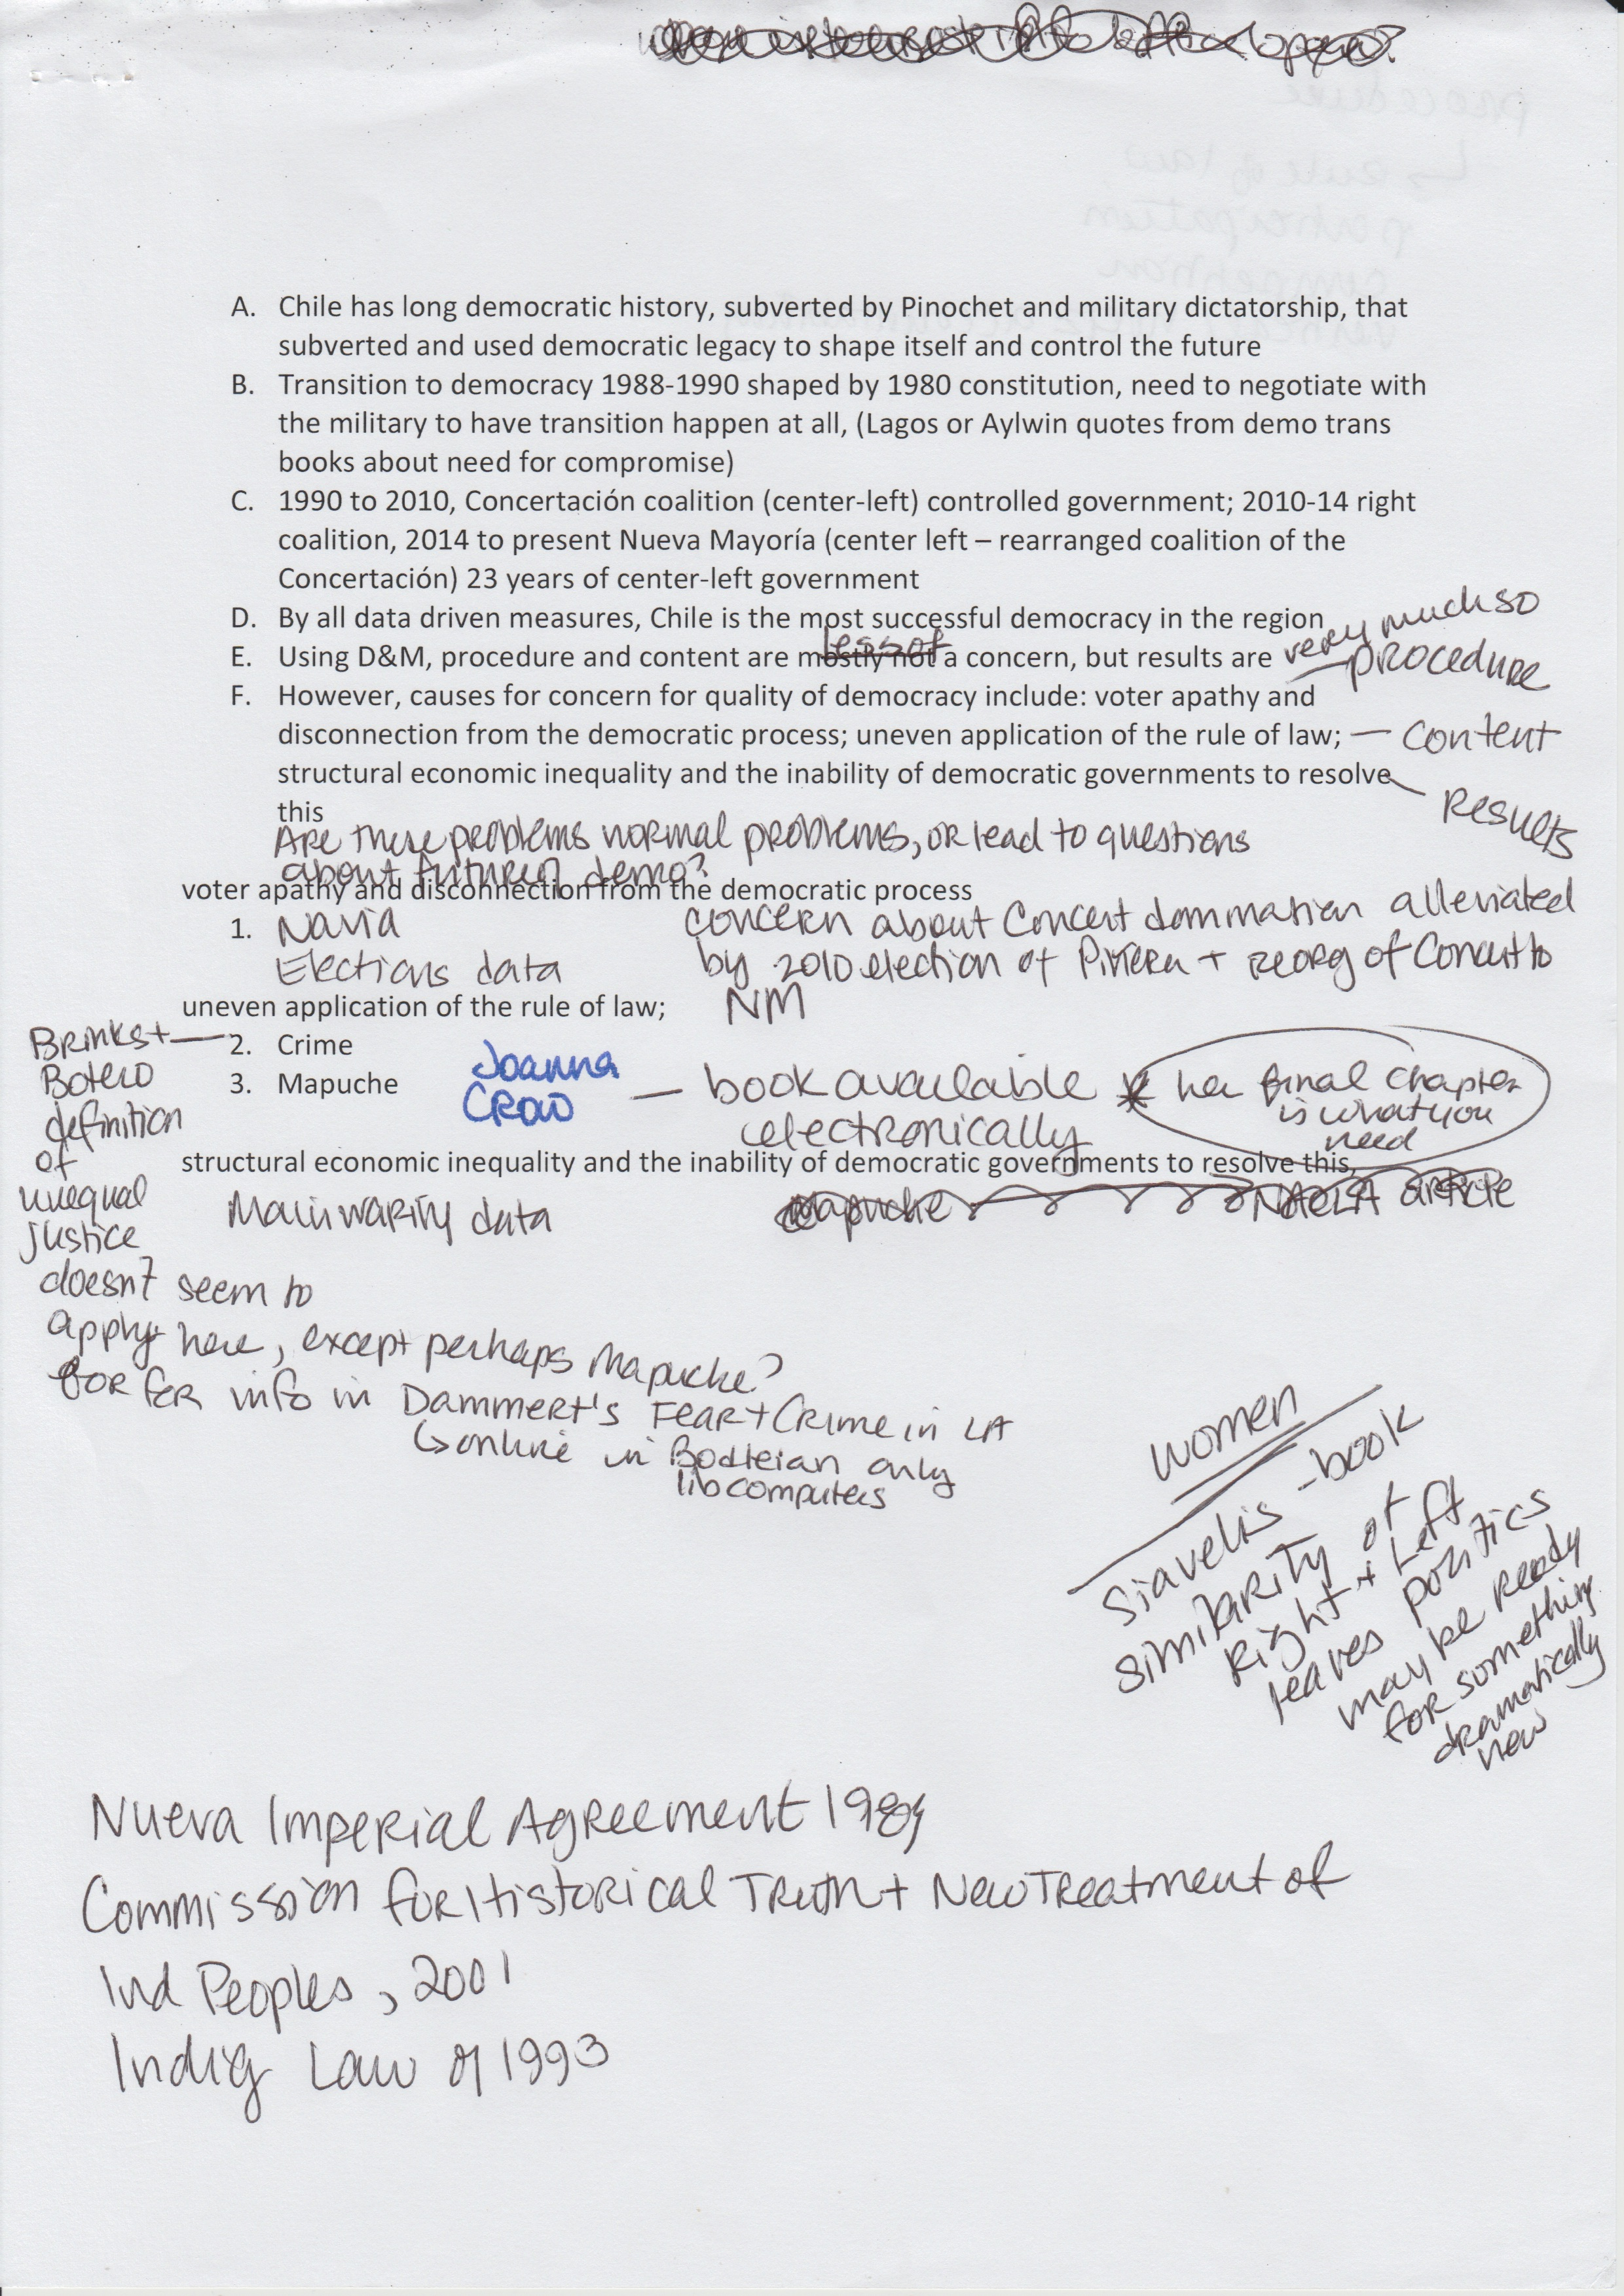 essay outline pages_Page_5.jpg